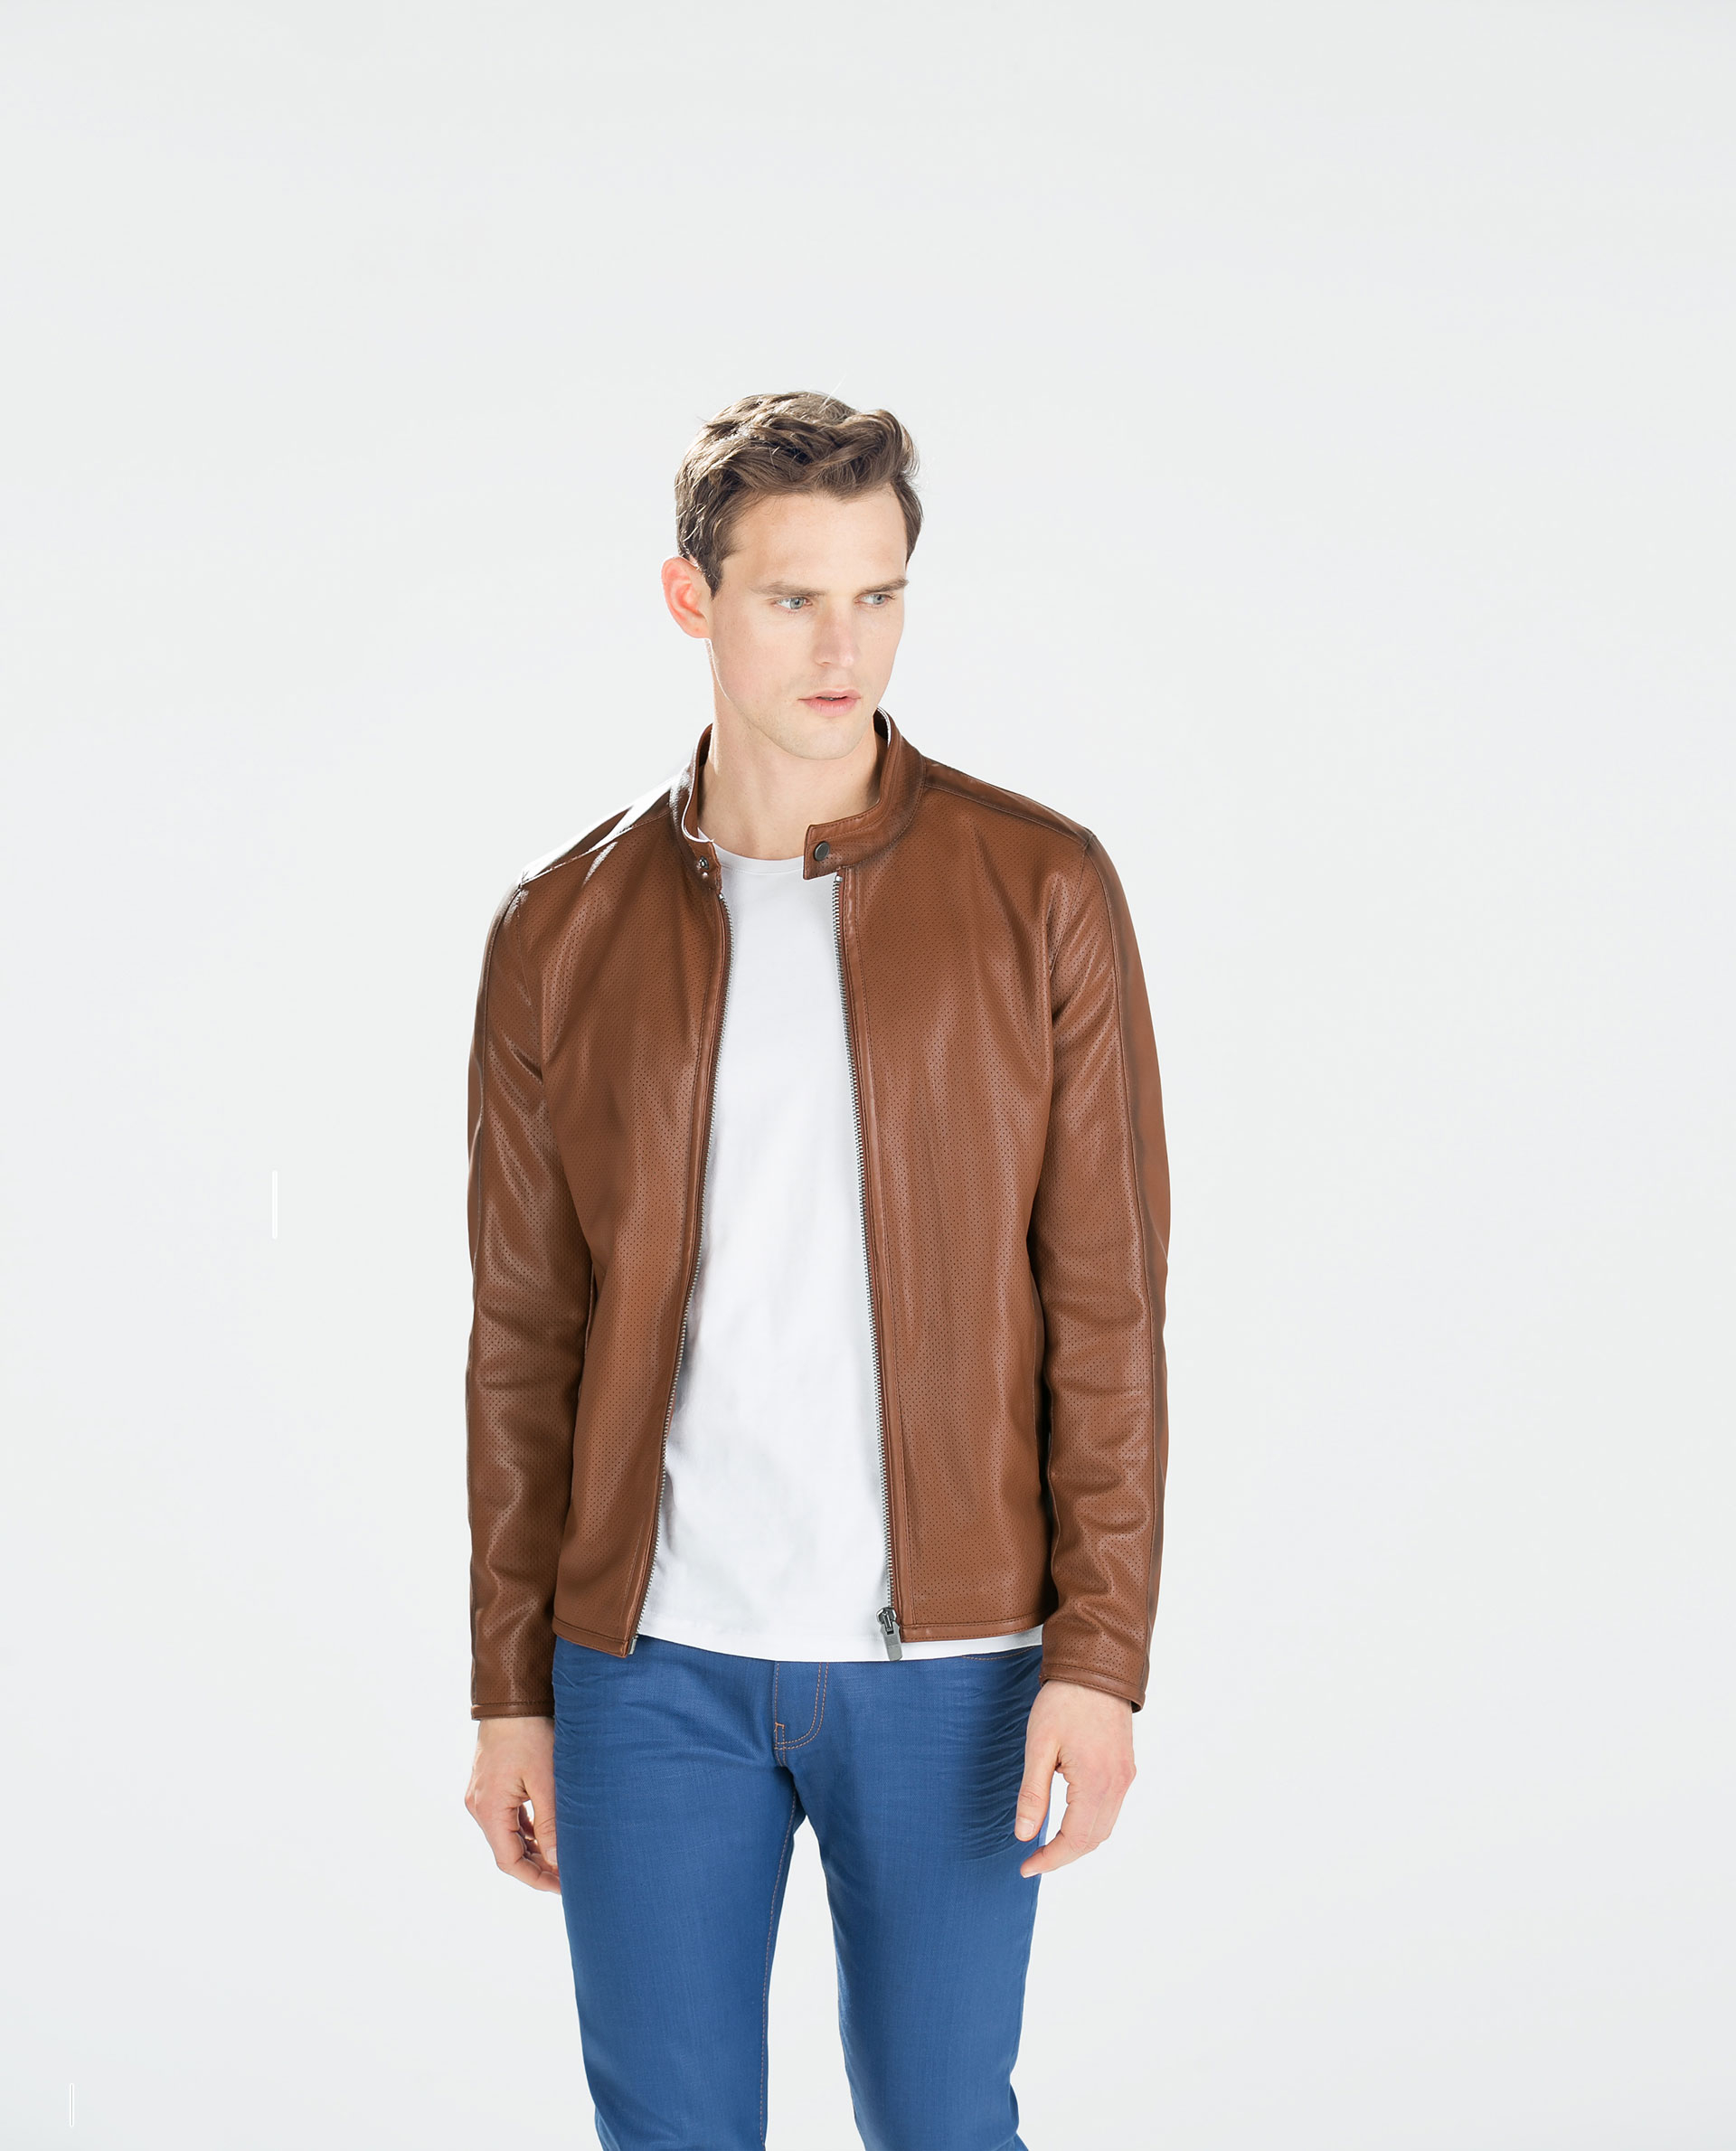 Mens brown coats jackets – New Fashion Photo Blog